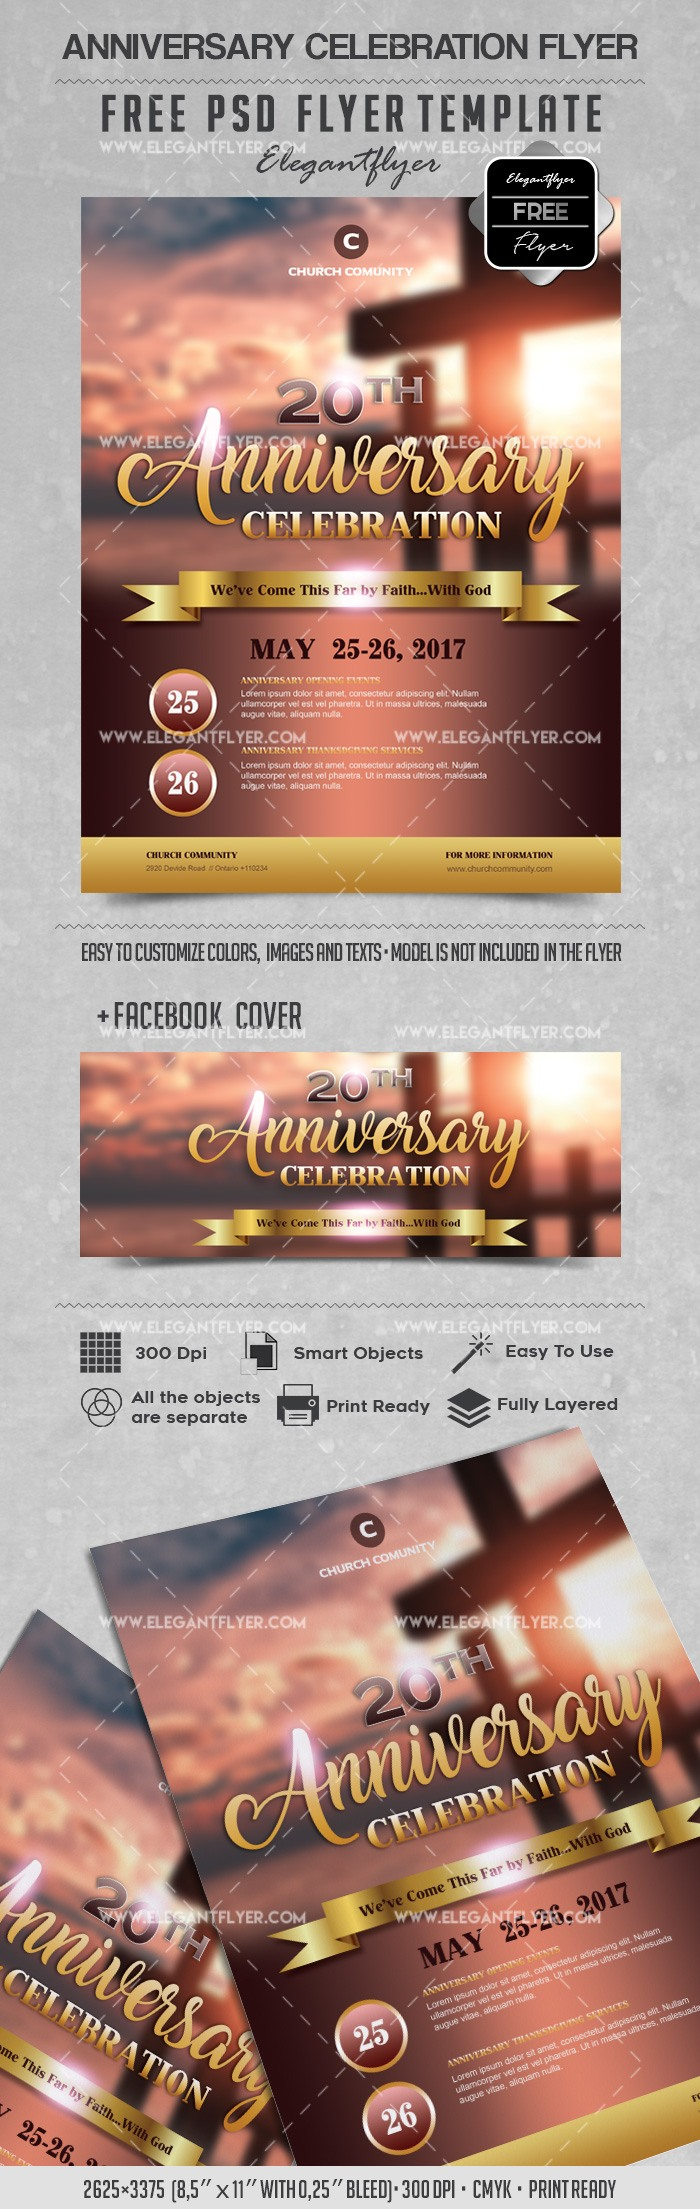 Anniversary Celebration – Free PSD Flyers Template